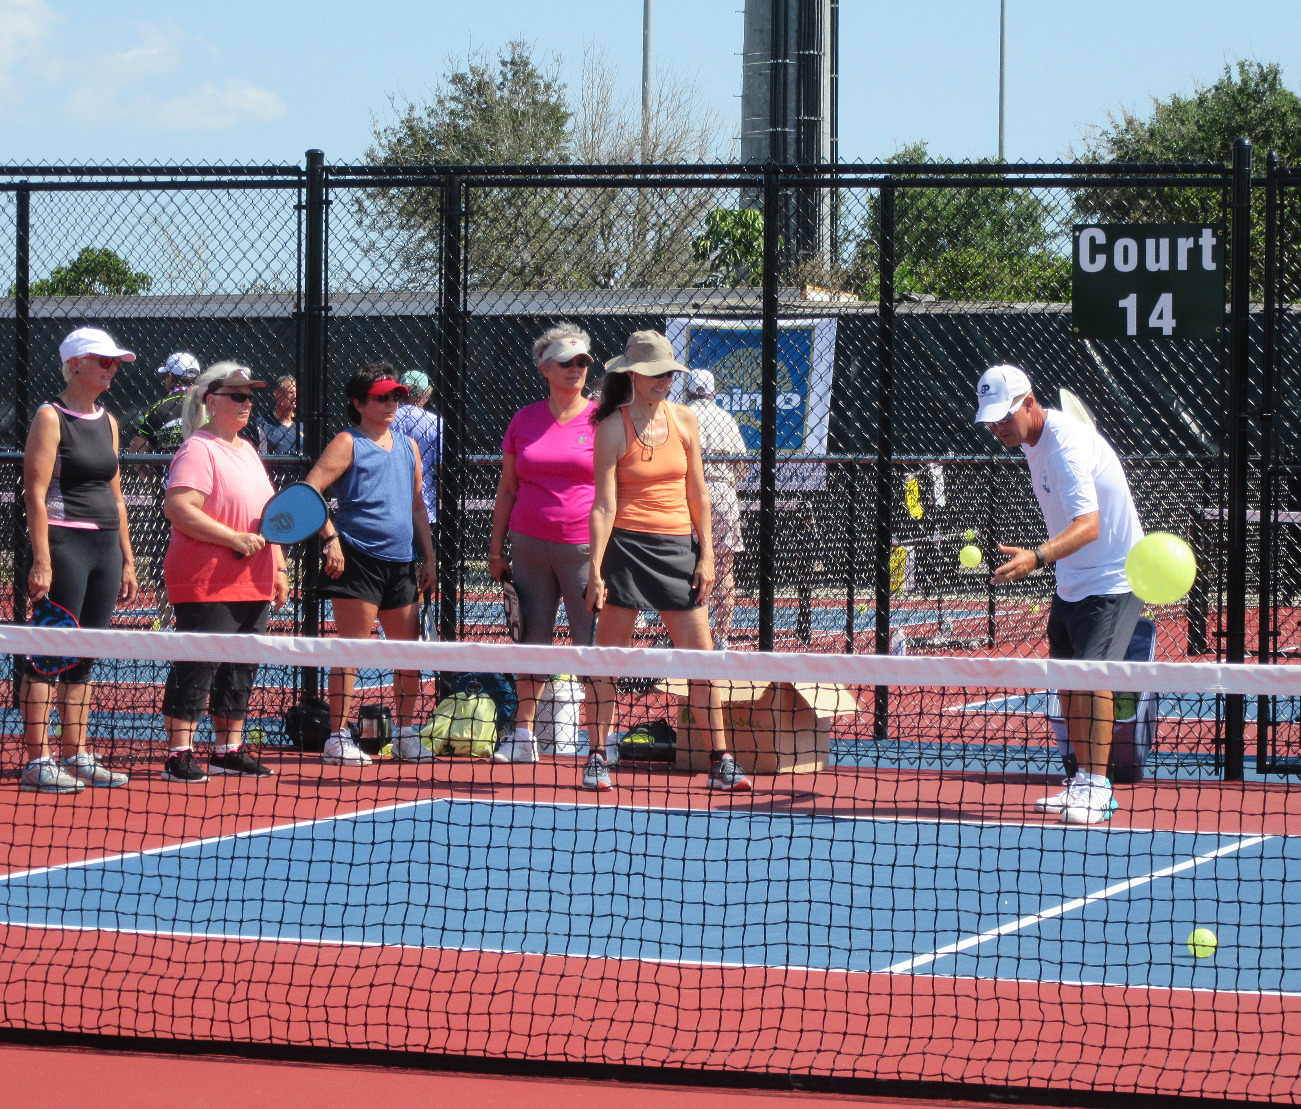 Clinics at US Open